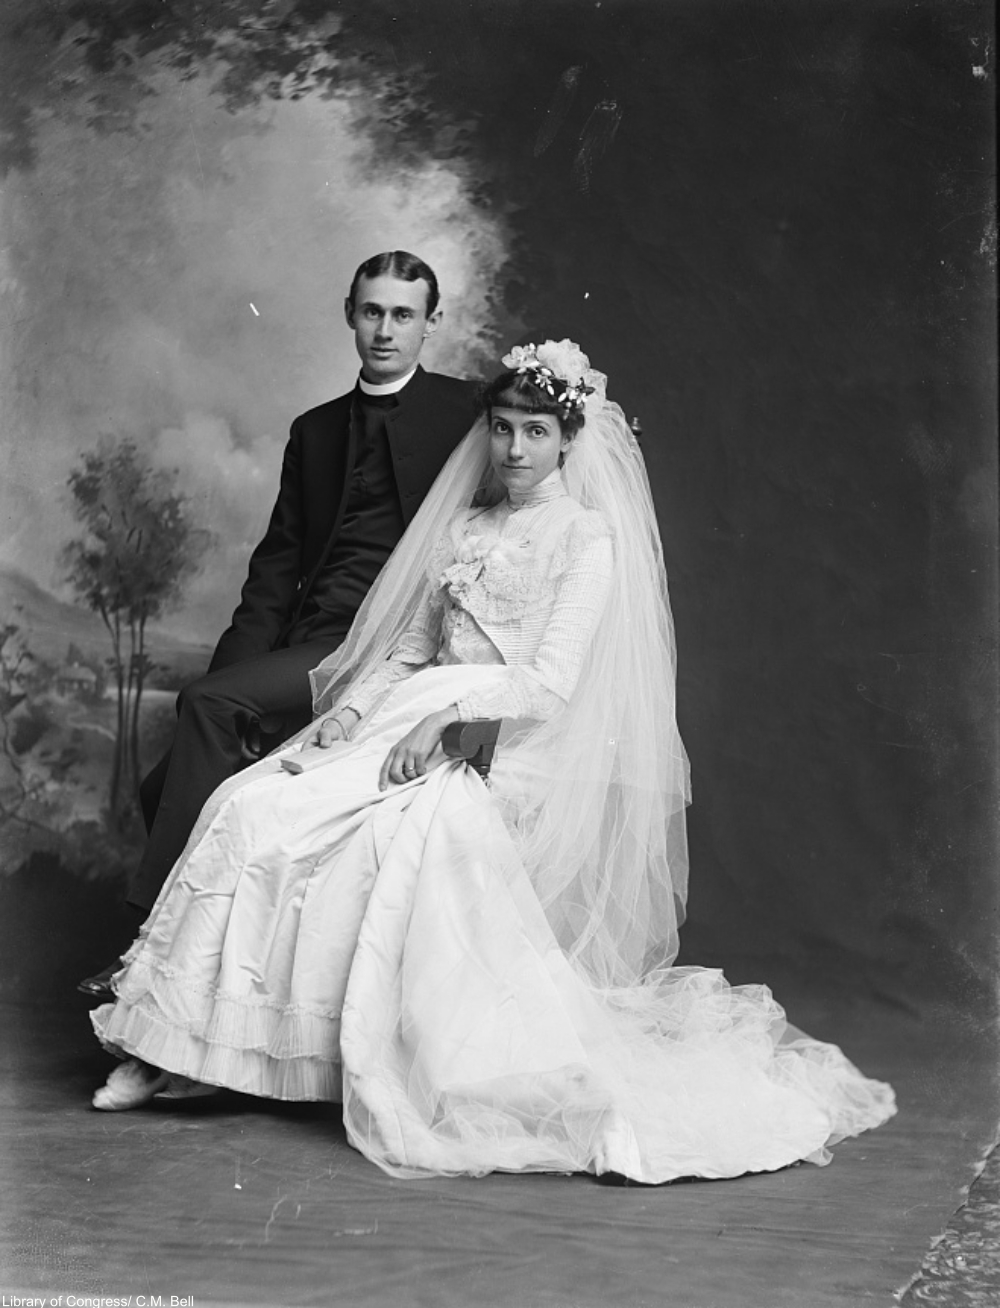 Victorian Bride Photographs Are So Beautiful